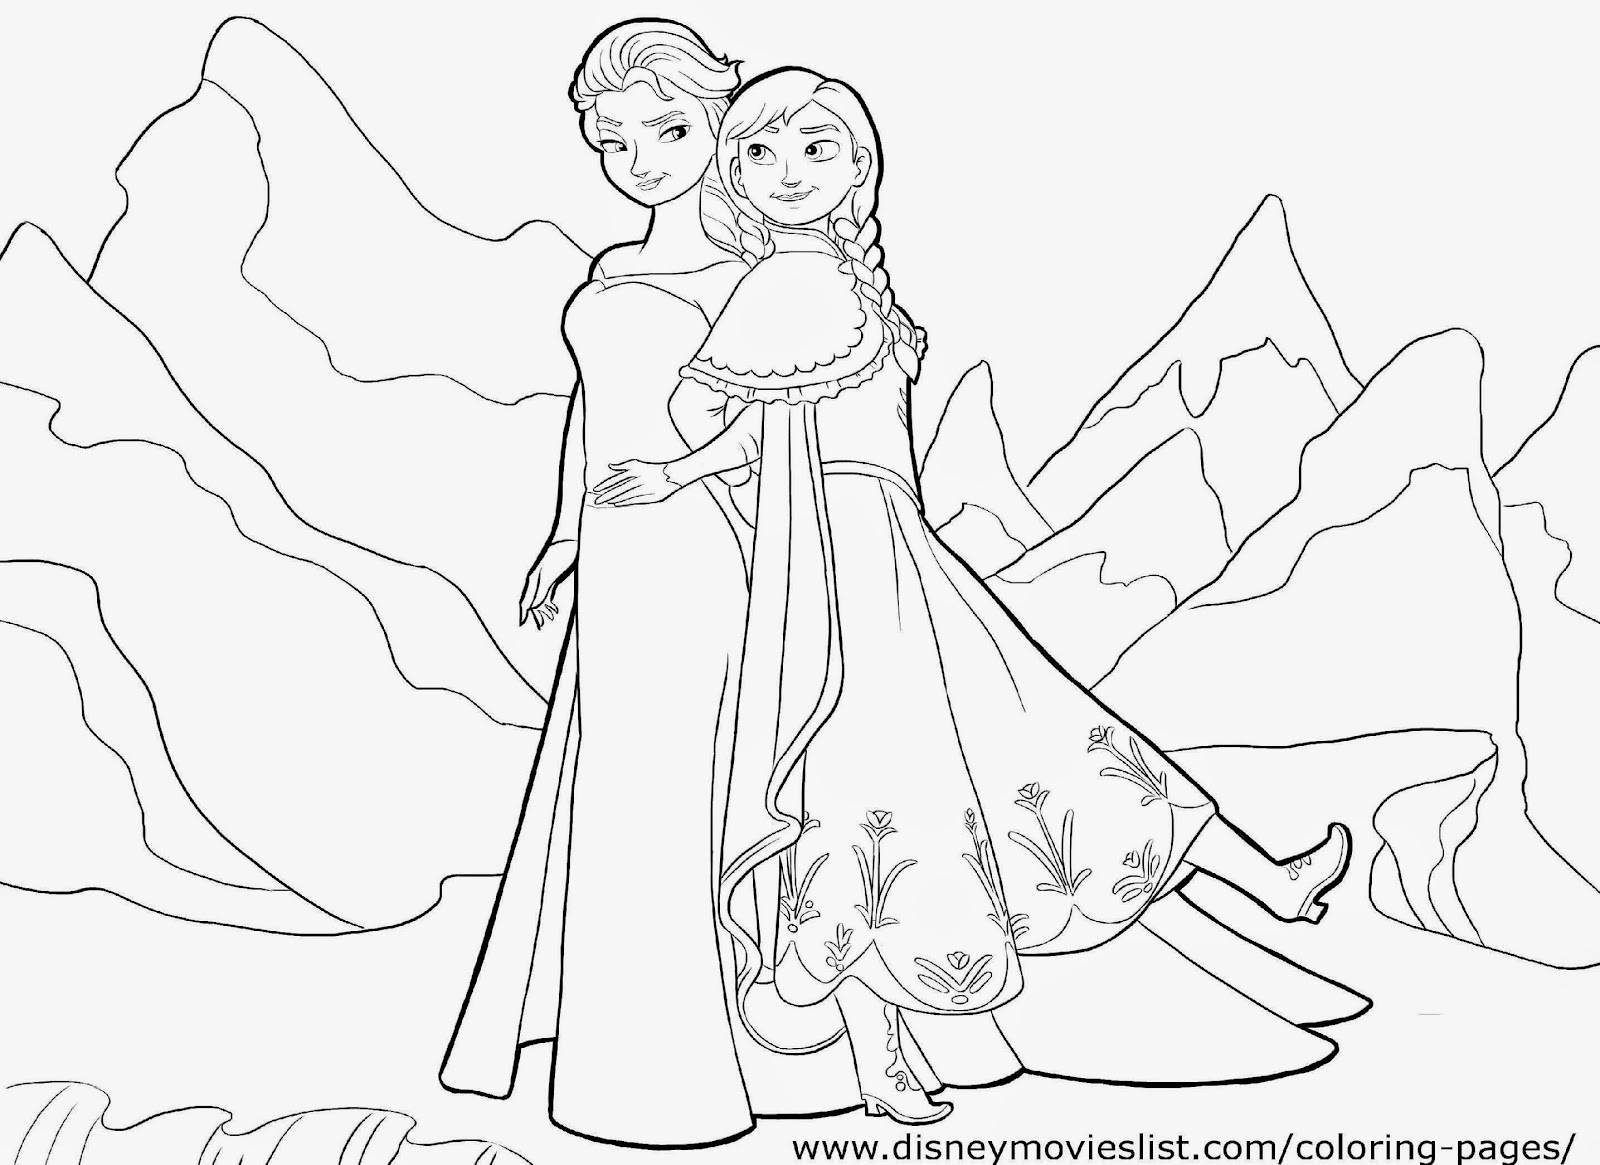 December 2014 free coloring sheet for Frozen coloring pages anna and elsa